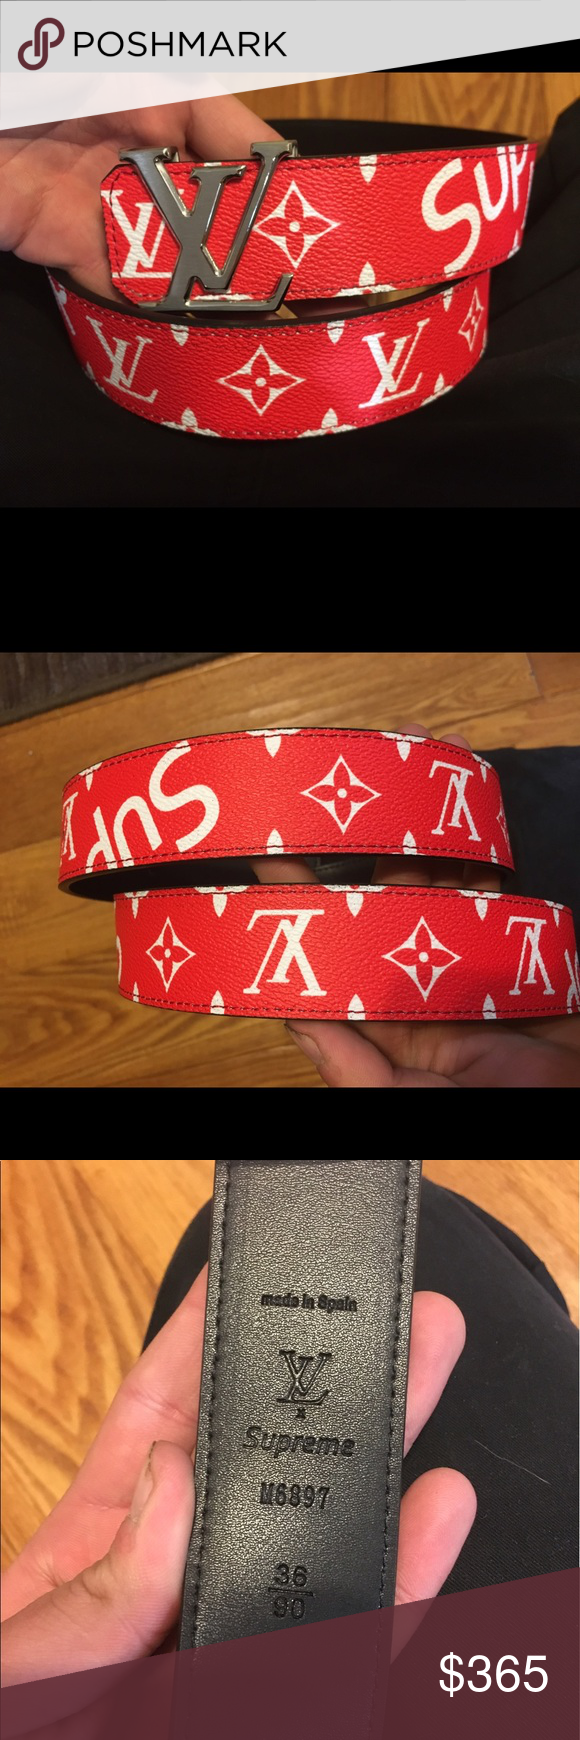 Louis Vuitton X Supreme Belt This Is A Brand New Collaboration It Has Never Been Worn And Made Of The Same Material As